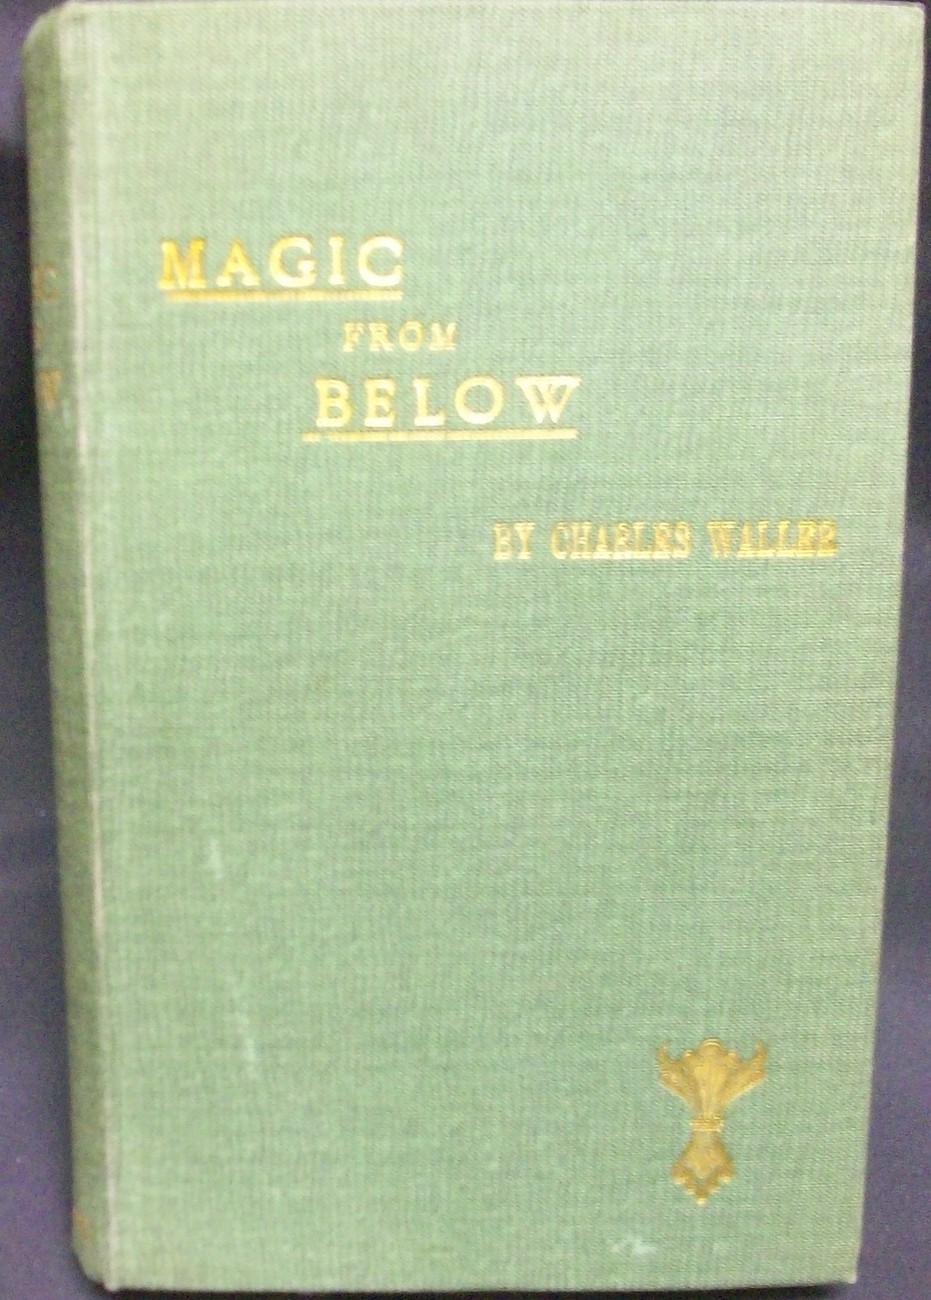 Magic from Below by Waller Charles